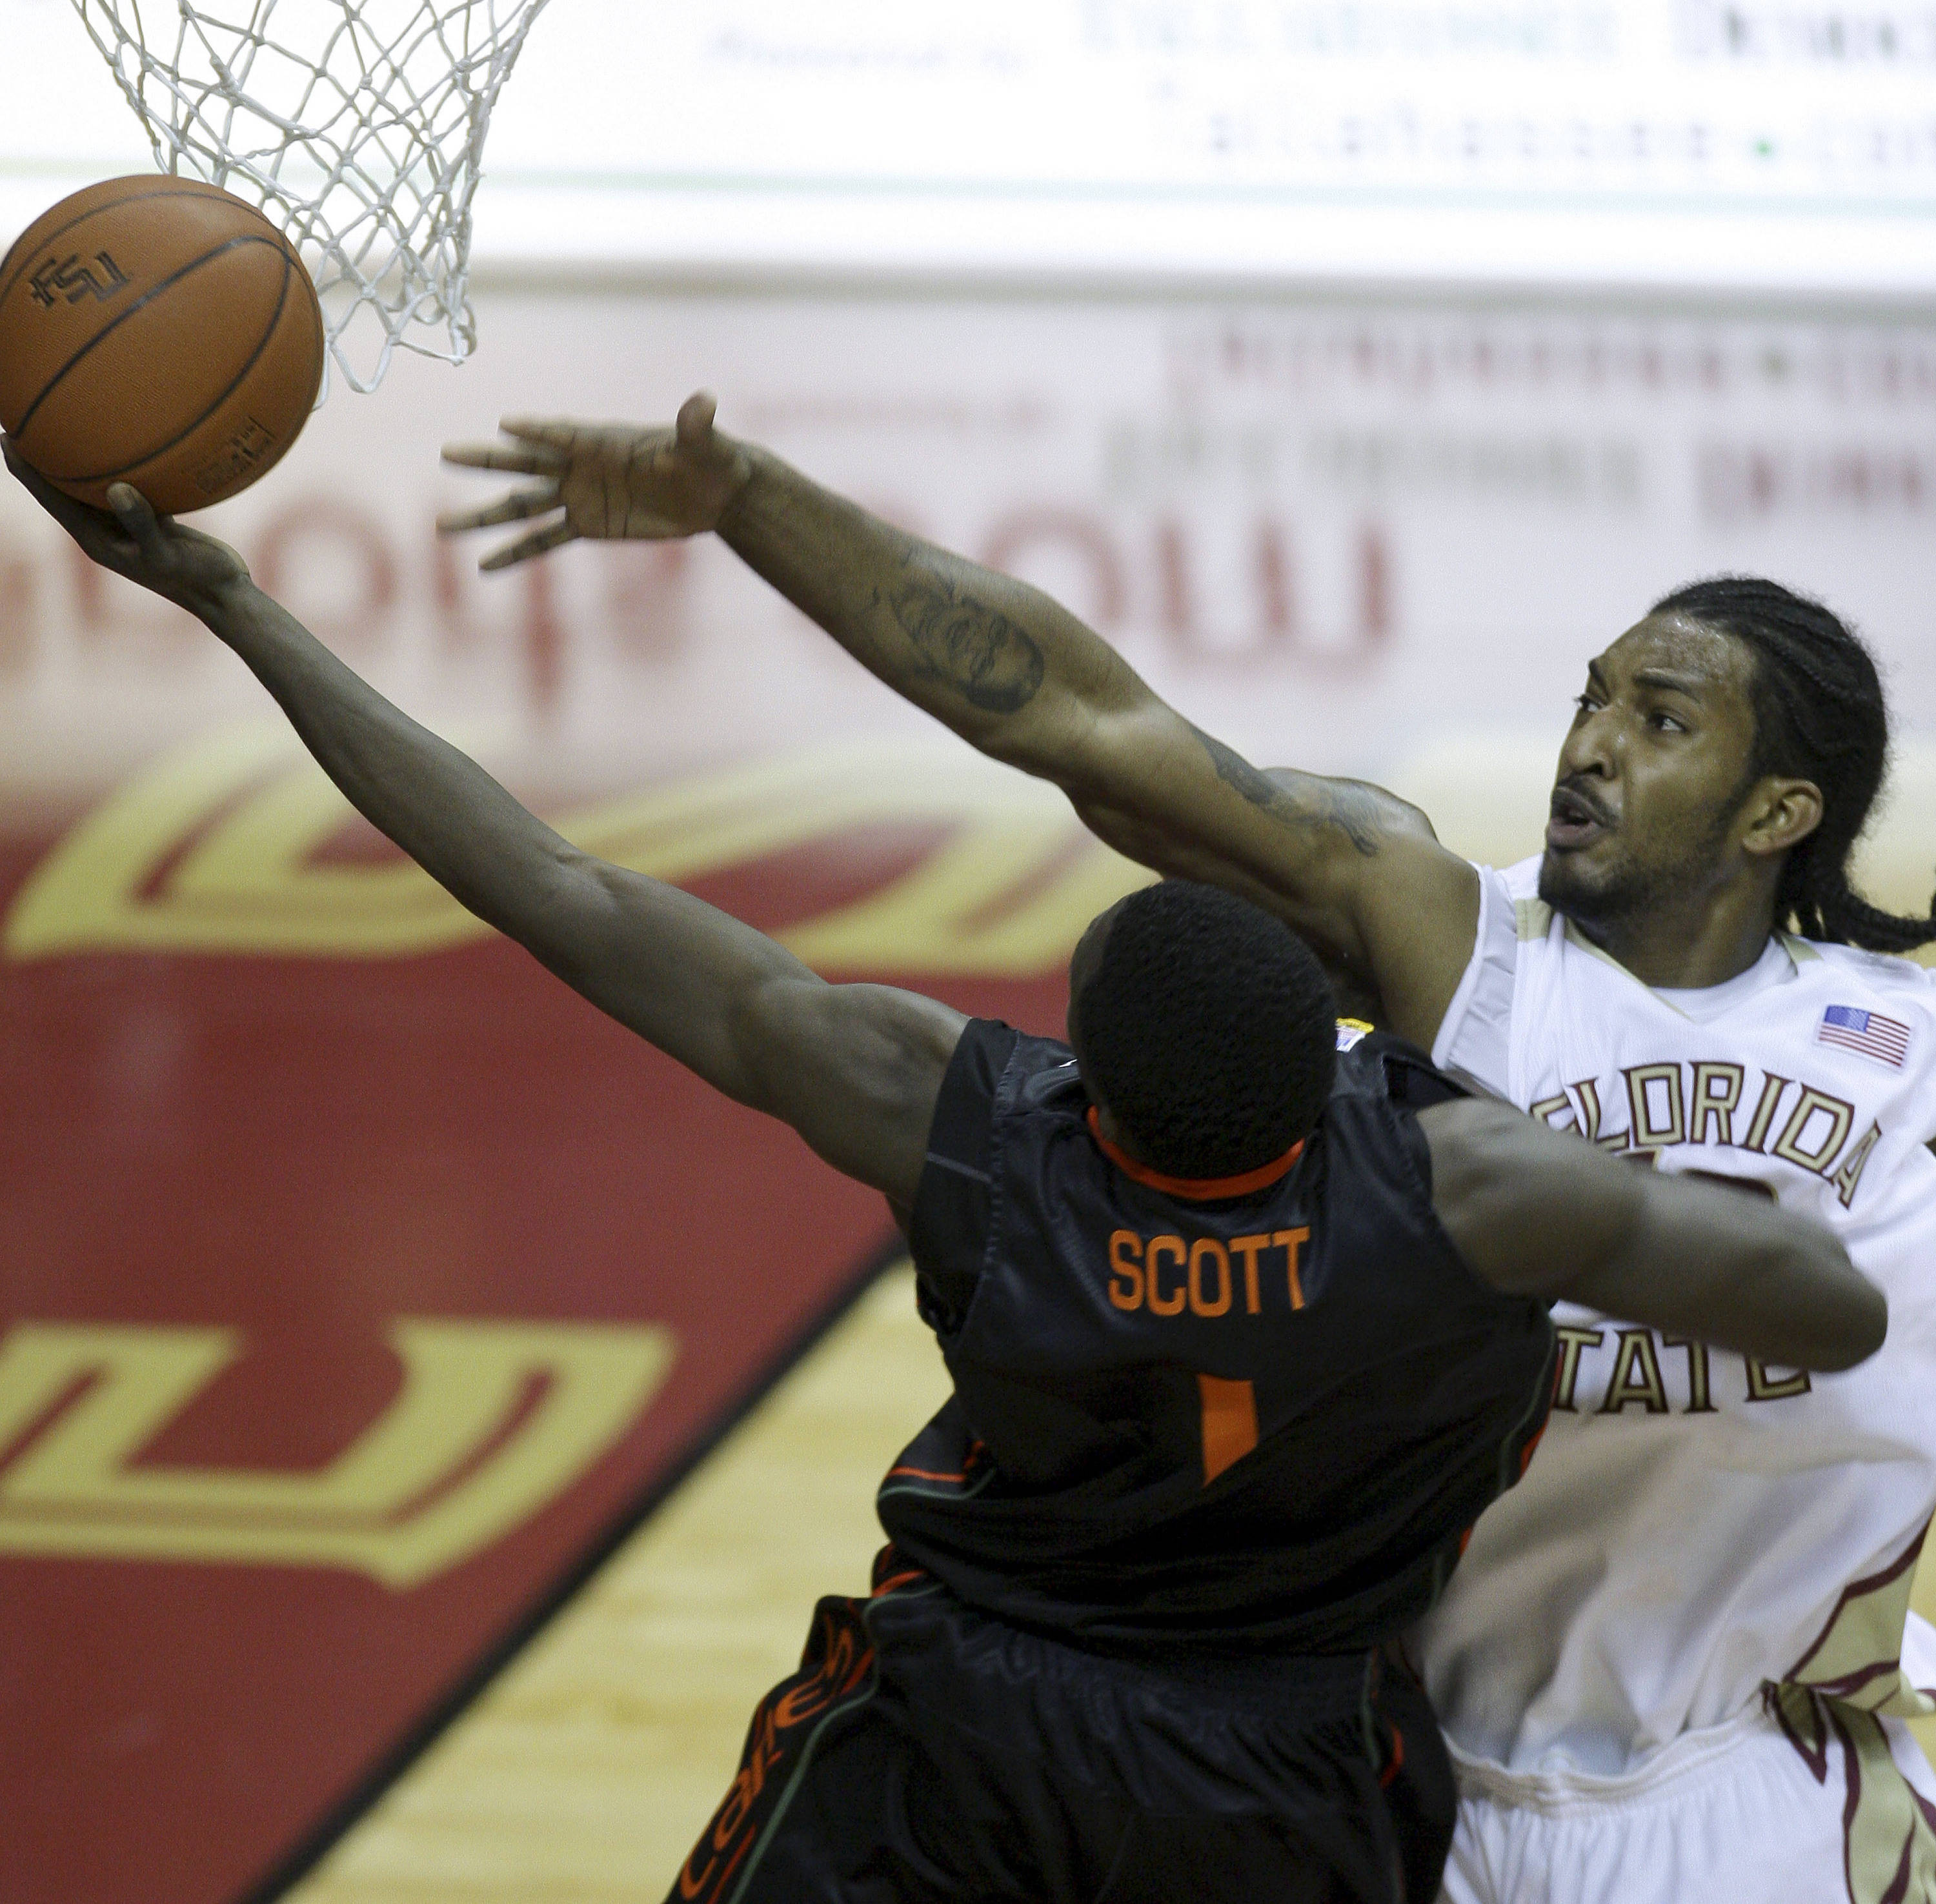 Florida State's Ryan Reid, right, fouls Miami's Durand Scott during the first half of an NCAA college basketball game, Saturday, Feb. 6, 2010, in Tallahassee, Fla. (AP Photo/Phil Coale)